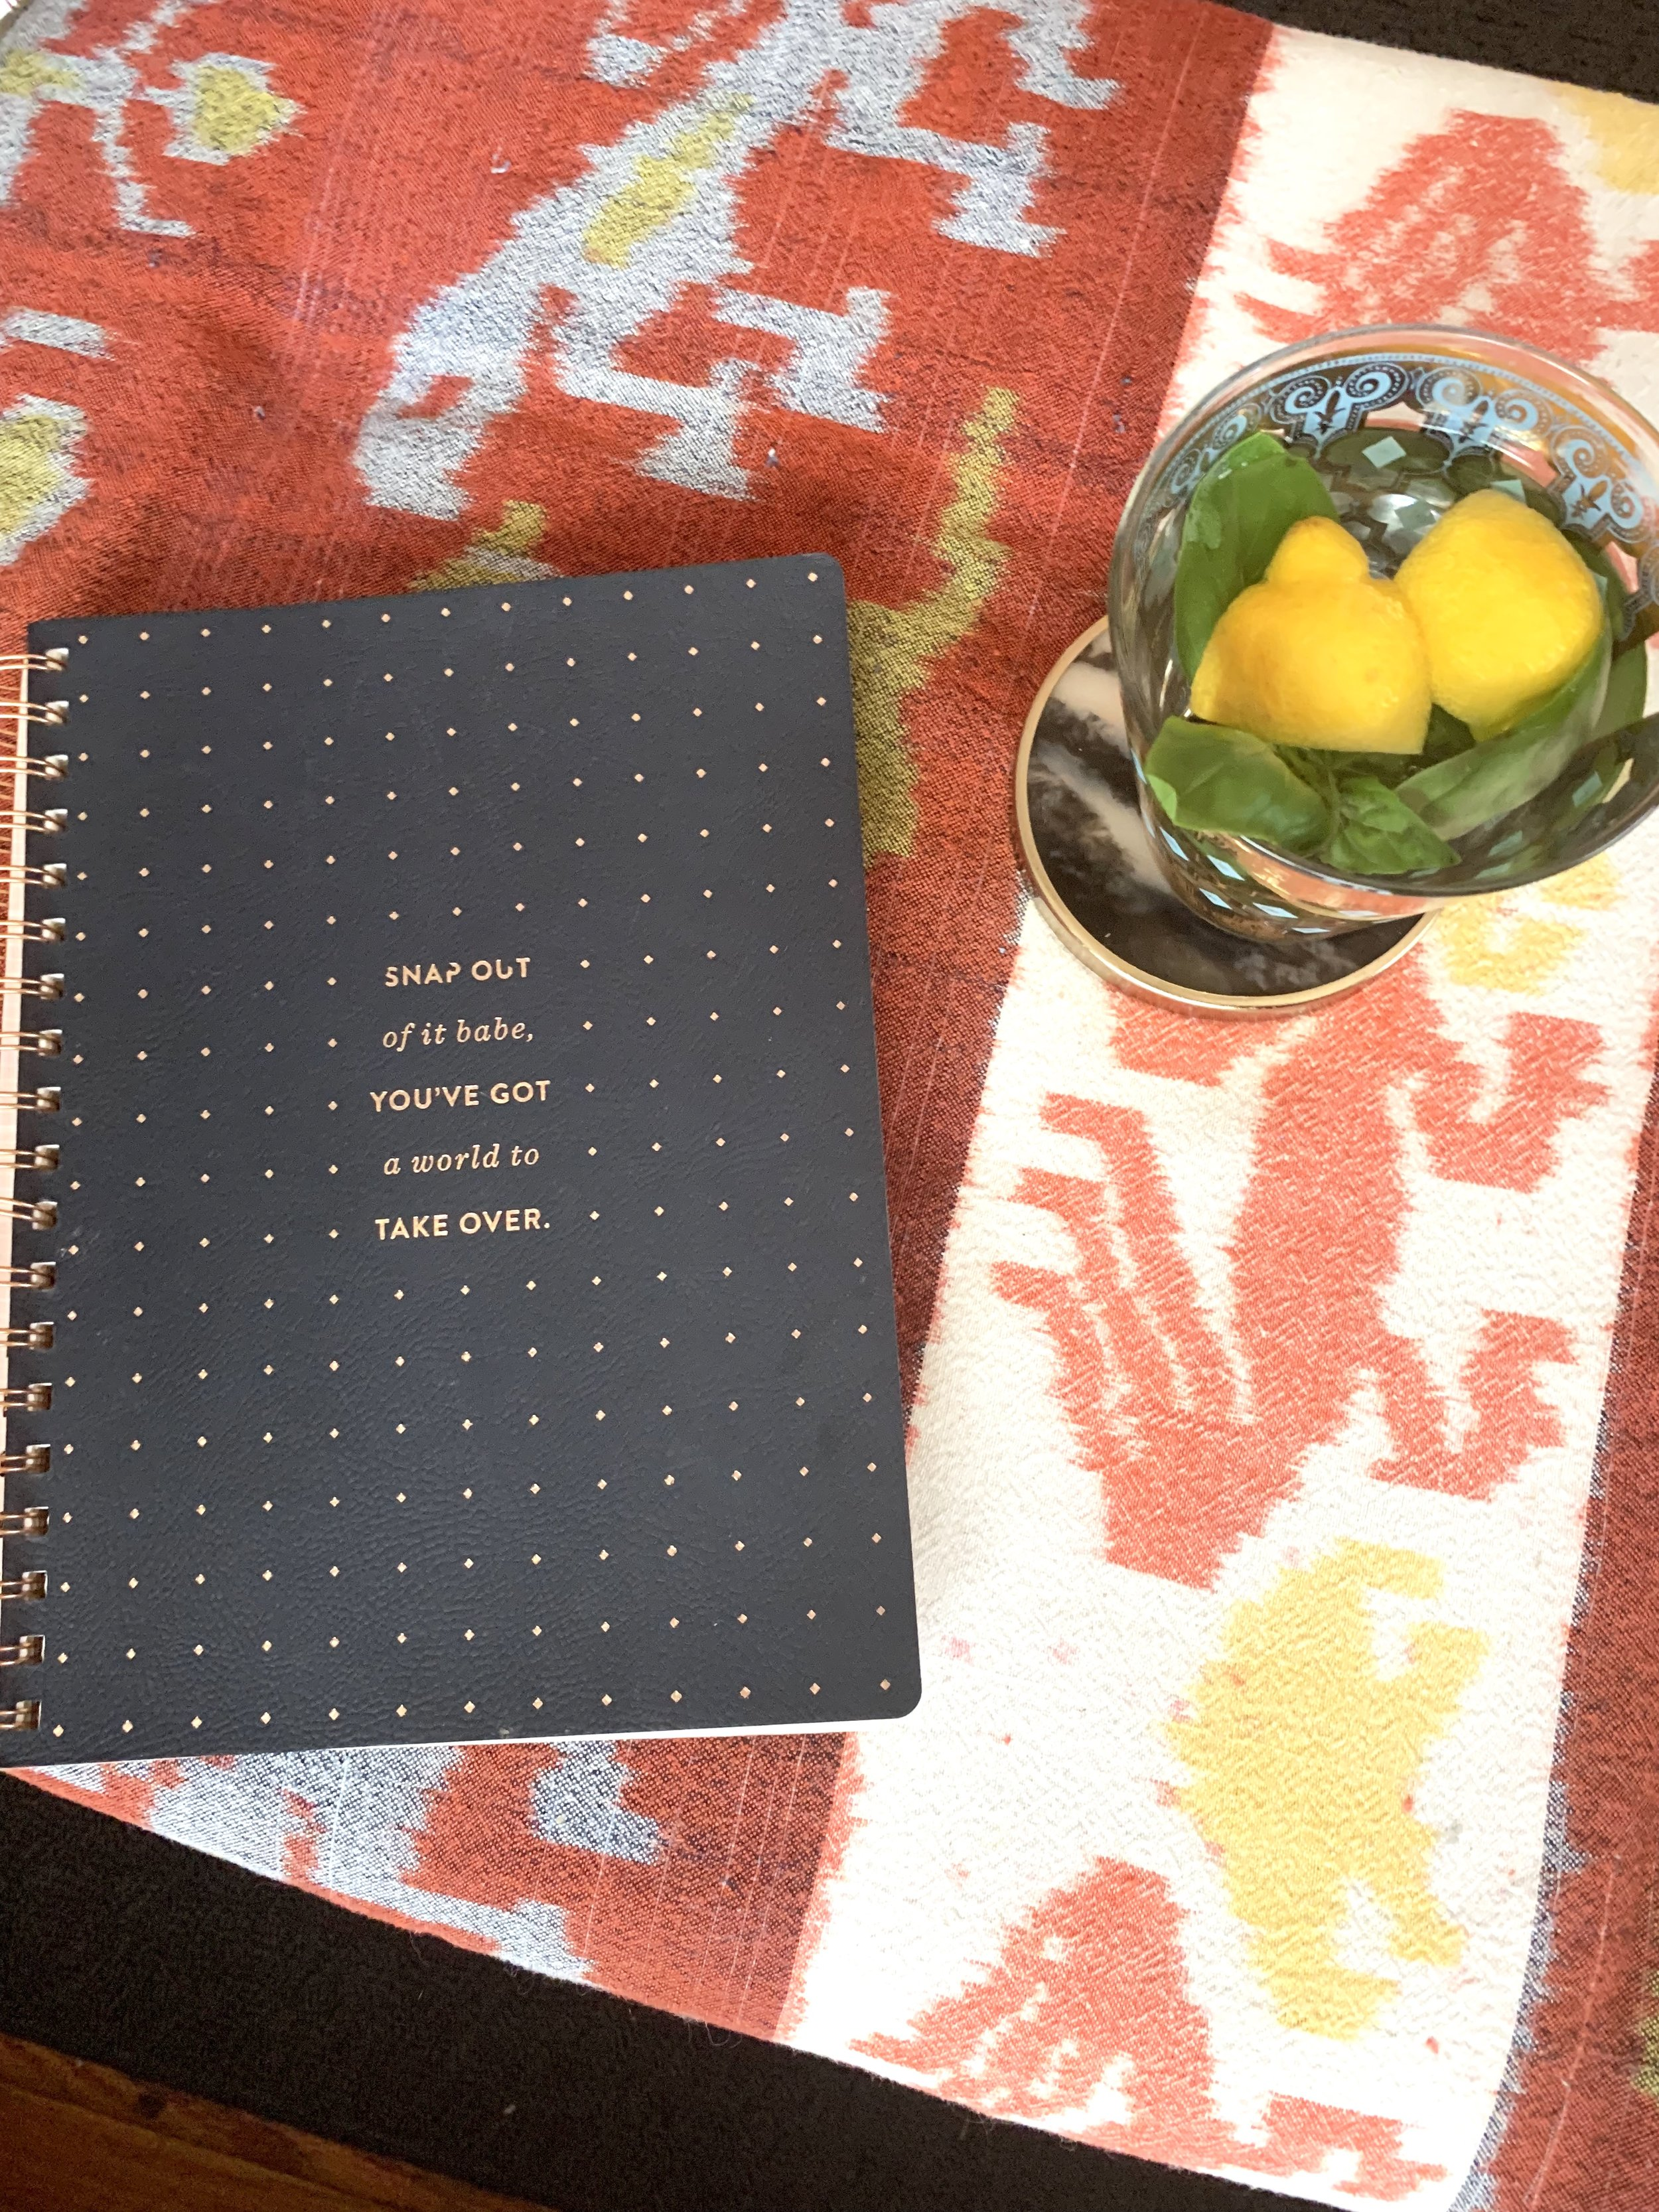 Notebooks are essential for capturing ideas and goals.